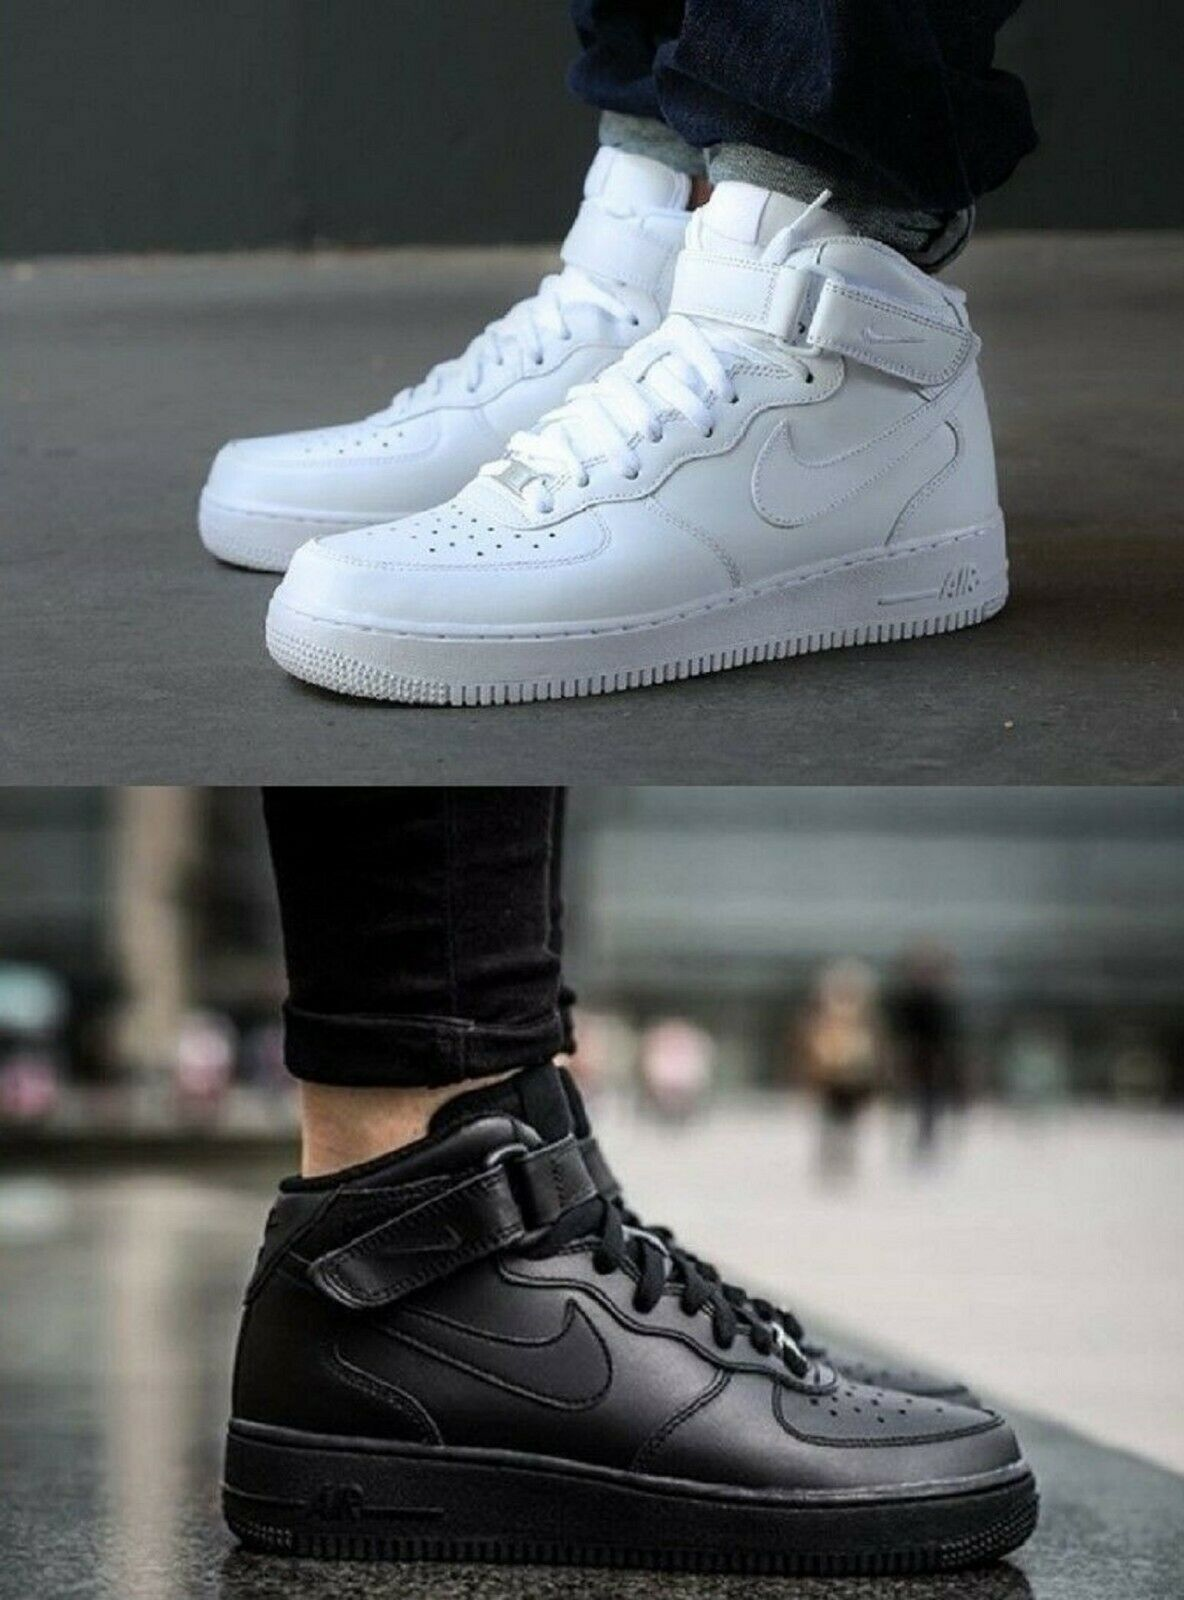 48dec9dea78c6 Men s NIKE AIR FORCE ONE 1 SNEAKERS LIFESTYLE SHOES NIKE MID  nypmlq7167-Athletic Shoes